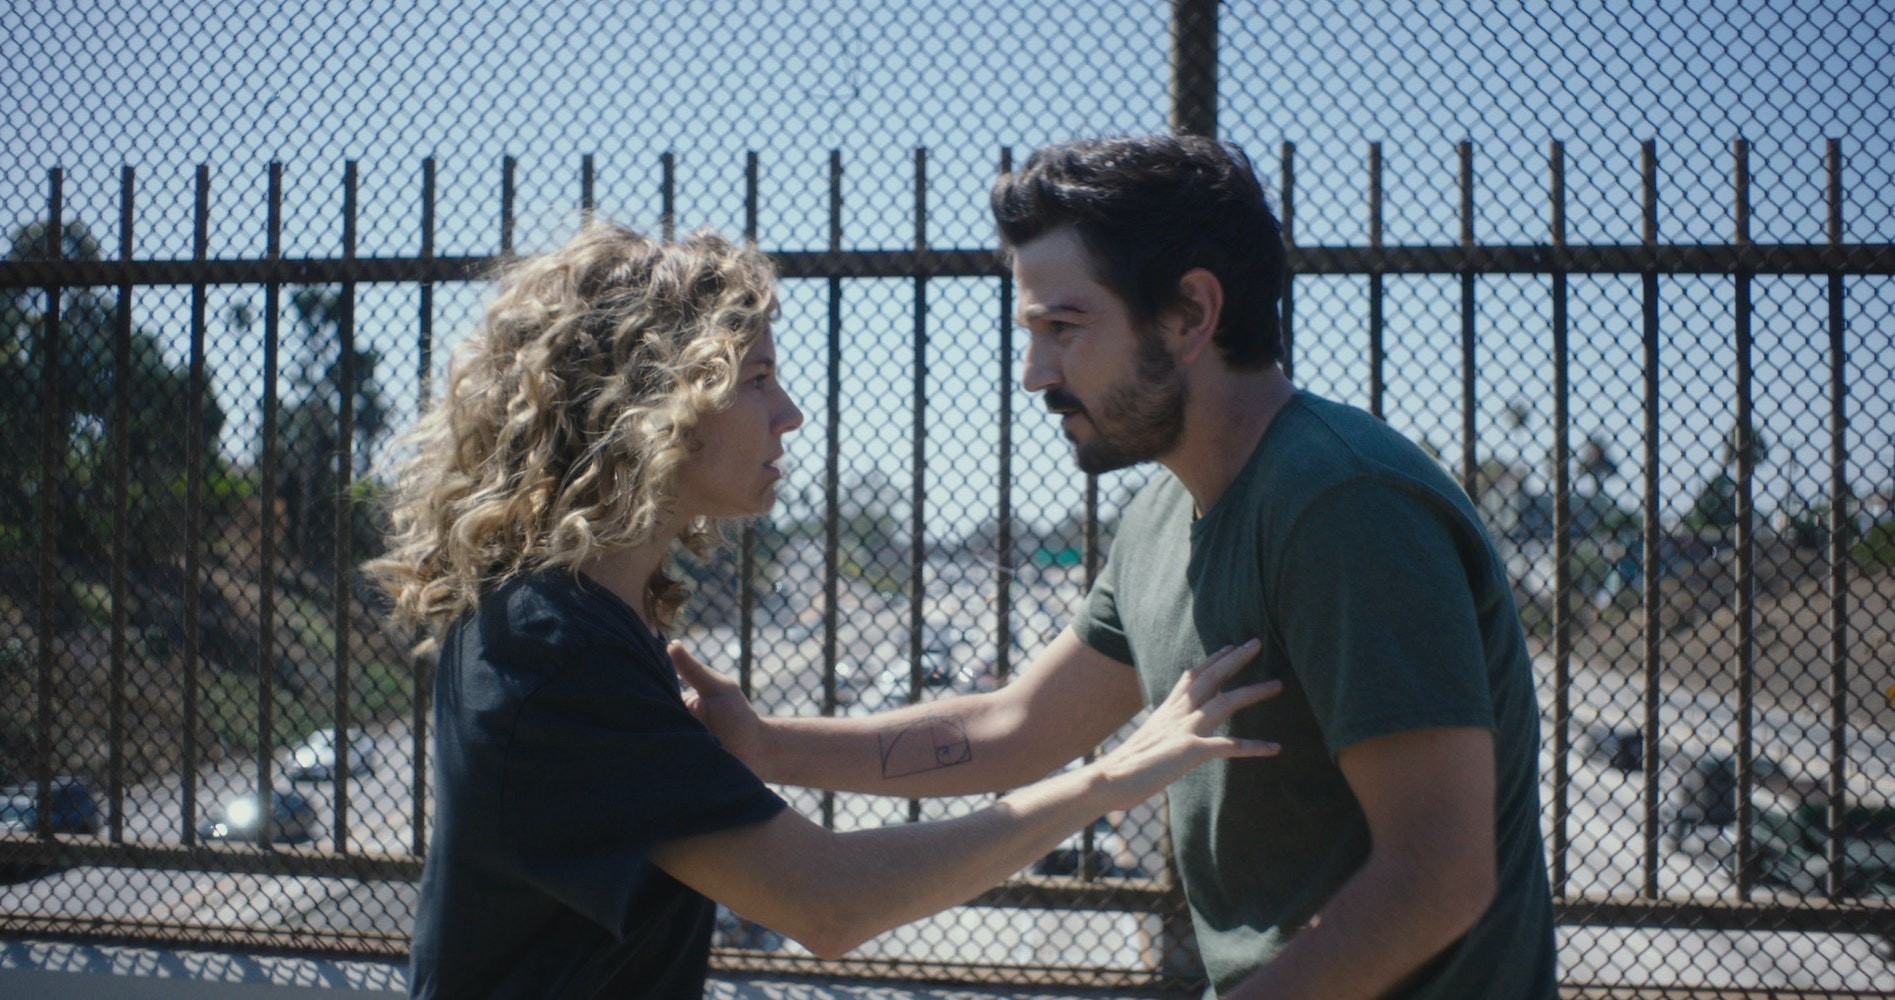 Sienna Miller and Diego Luna look at one another with intensity on a freeway overpass.